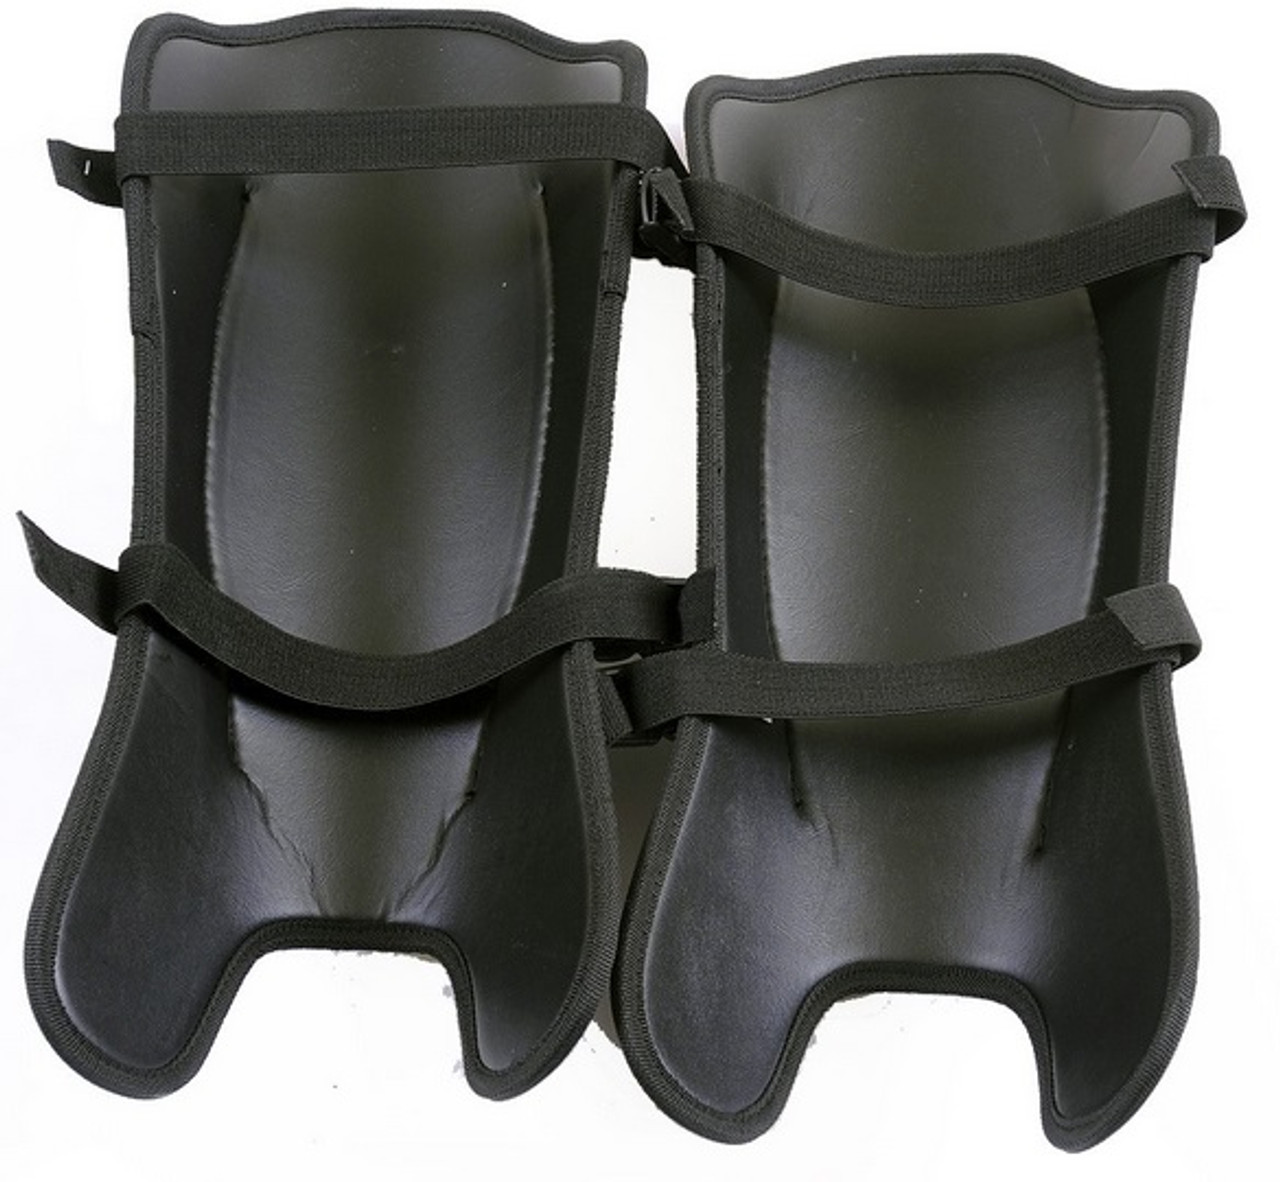 Honig's Softball Shin Guards Inside View